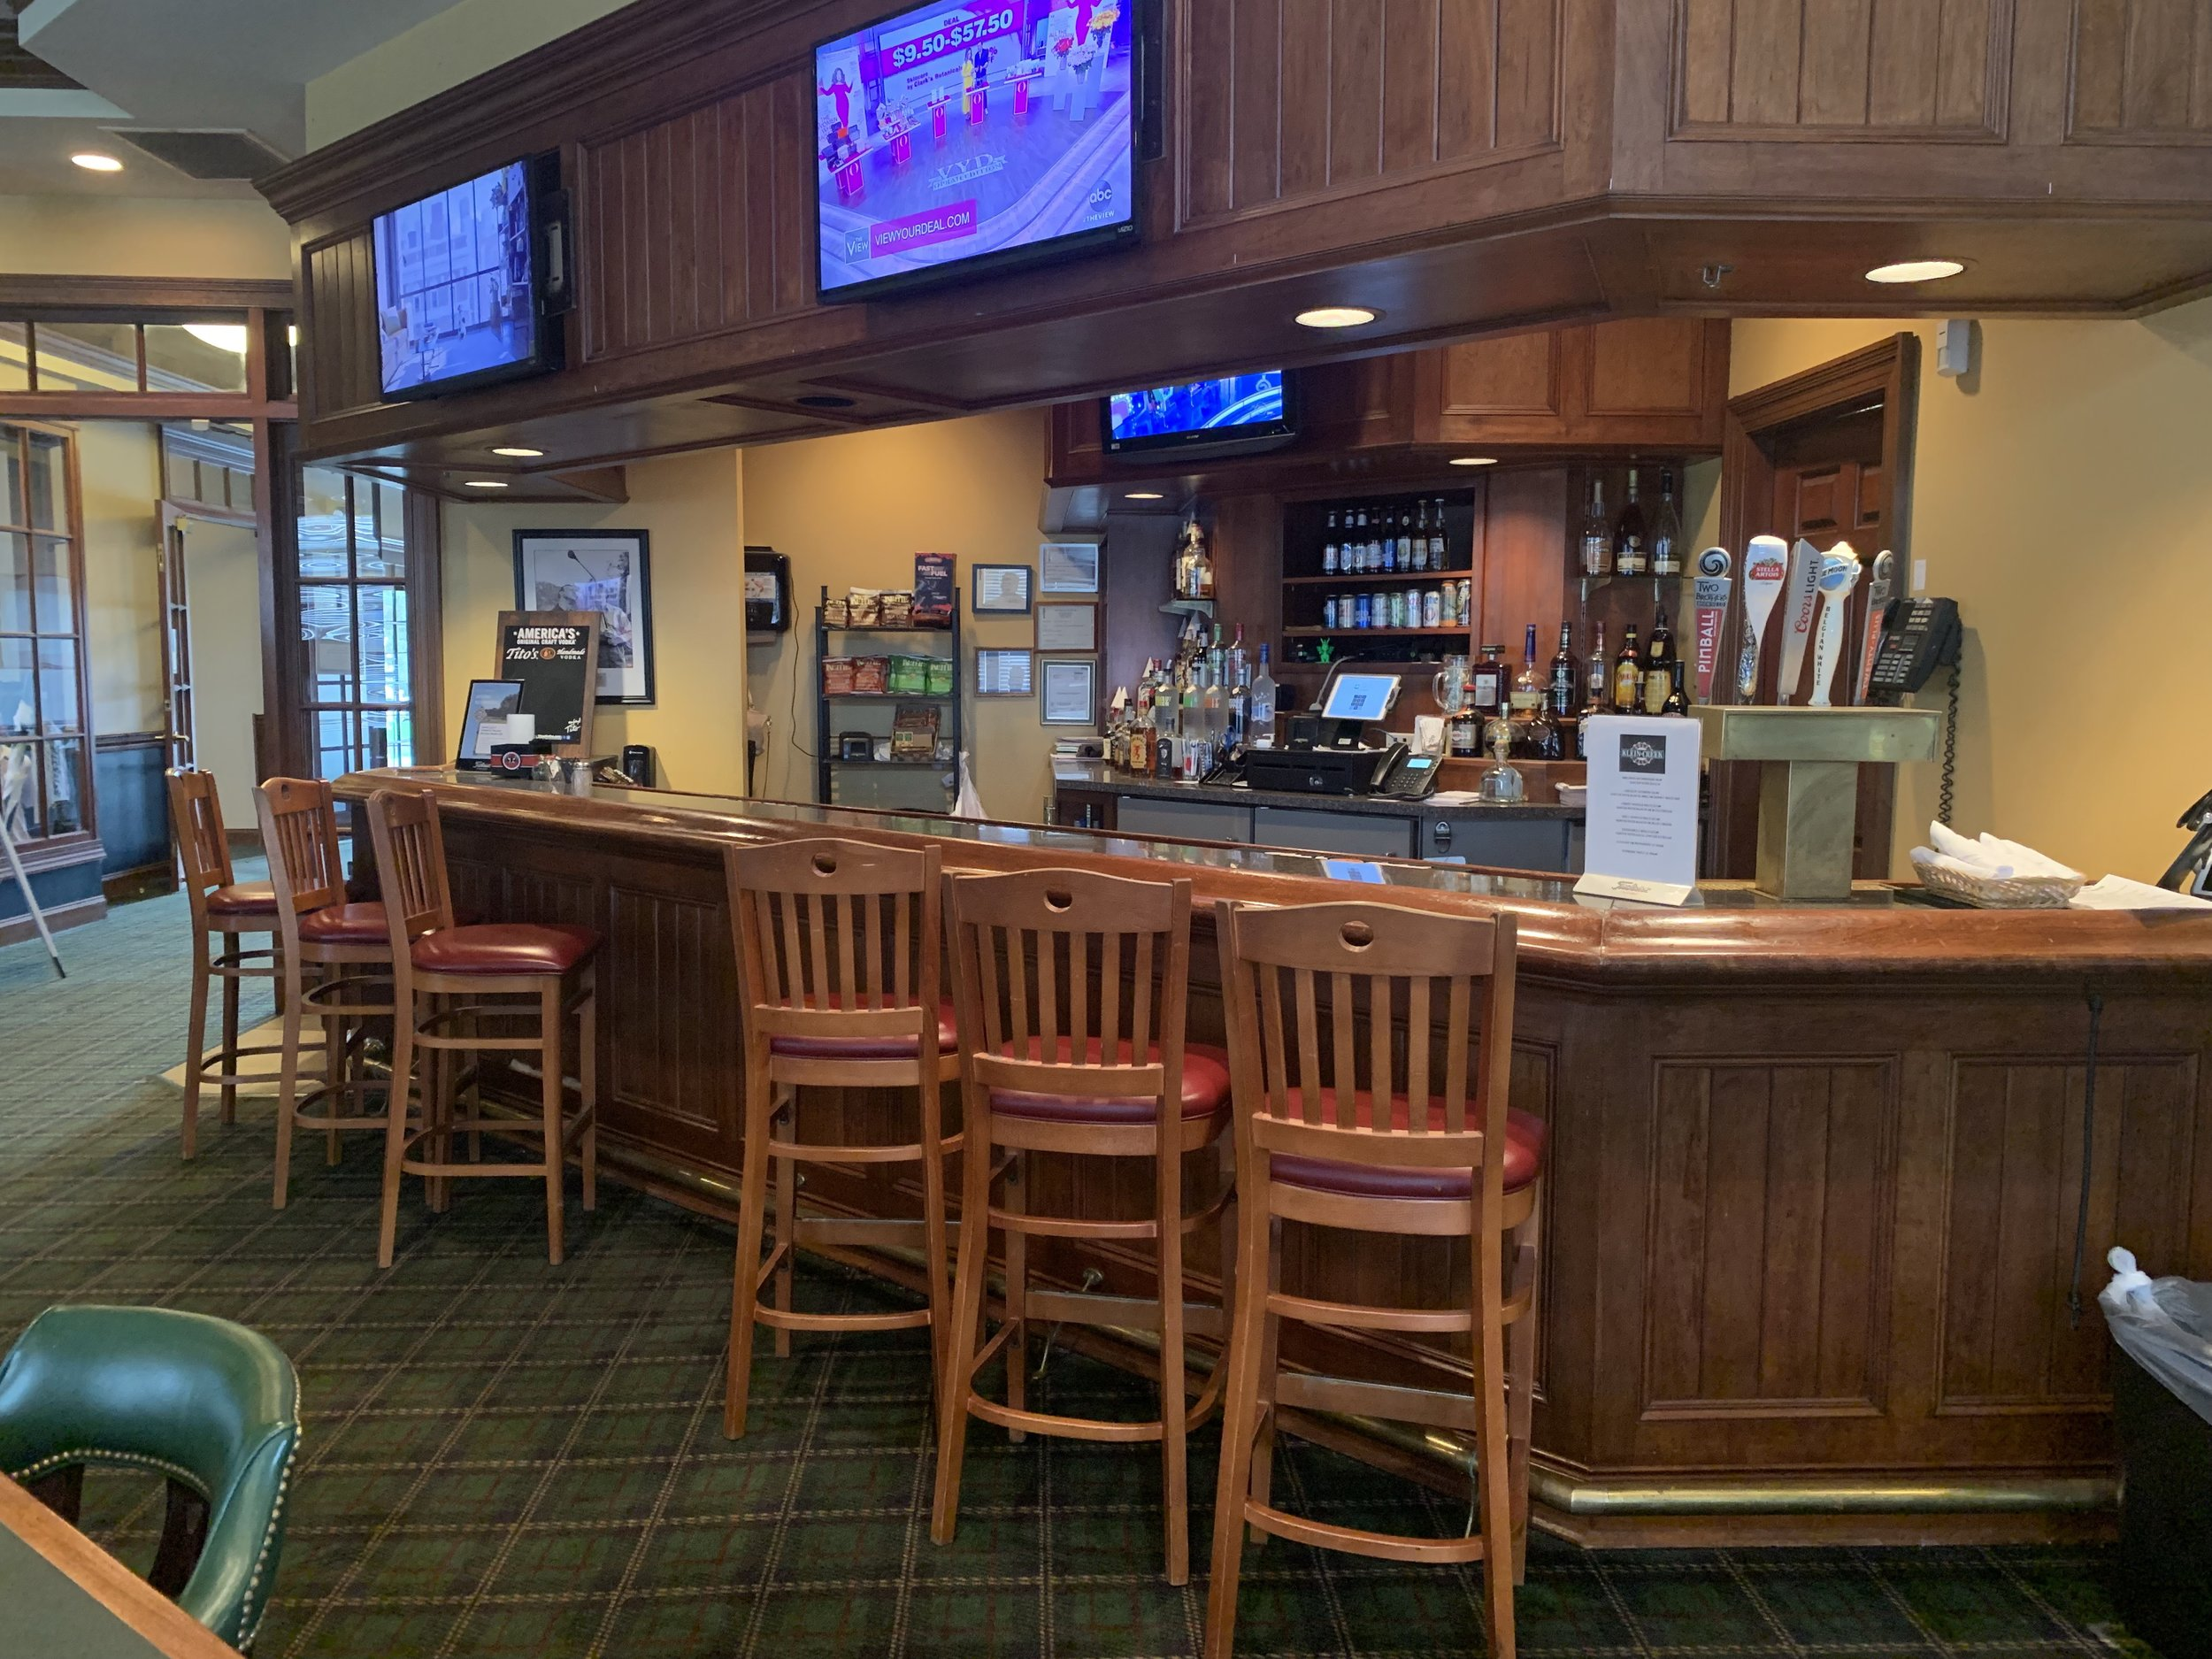 Located in the Clubhouse at Klein Creek Golf Club, the  Creekside Restaurant  is open to the public and offers great food, ambience, atmosphere and amenities at affordable prices. The Creekside Restaurant is open daily for lunch and dinner throughout the golf season.